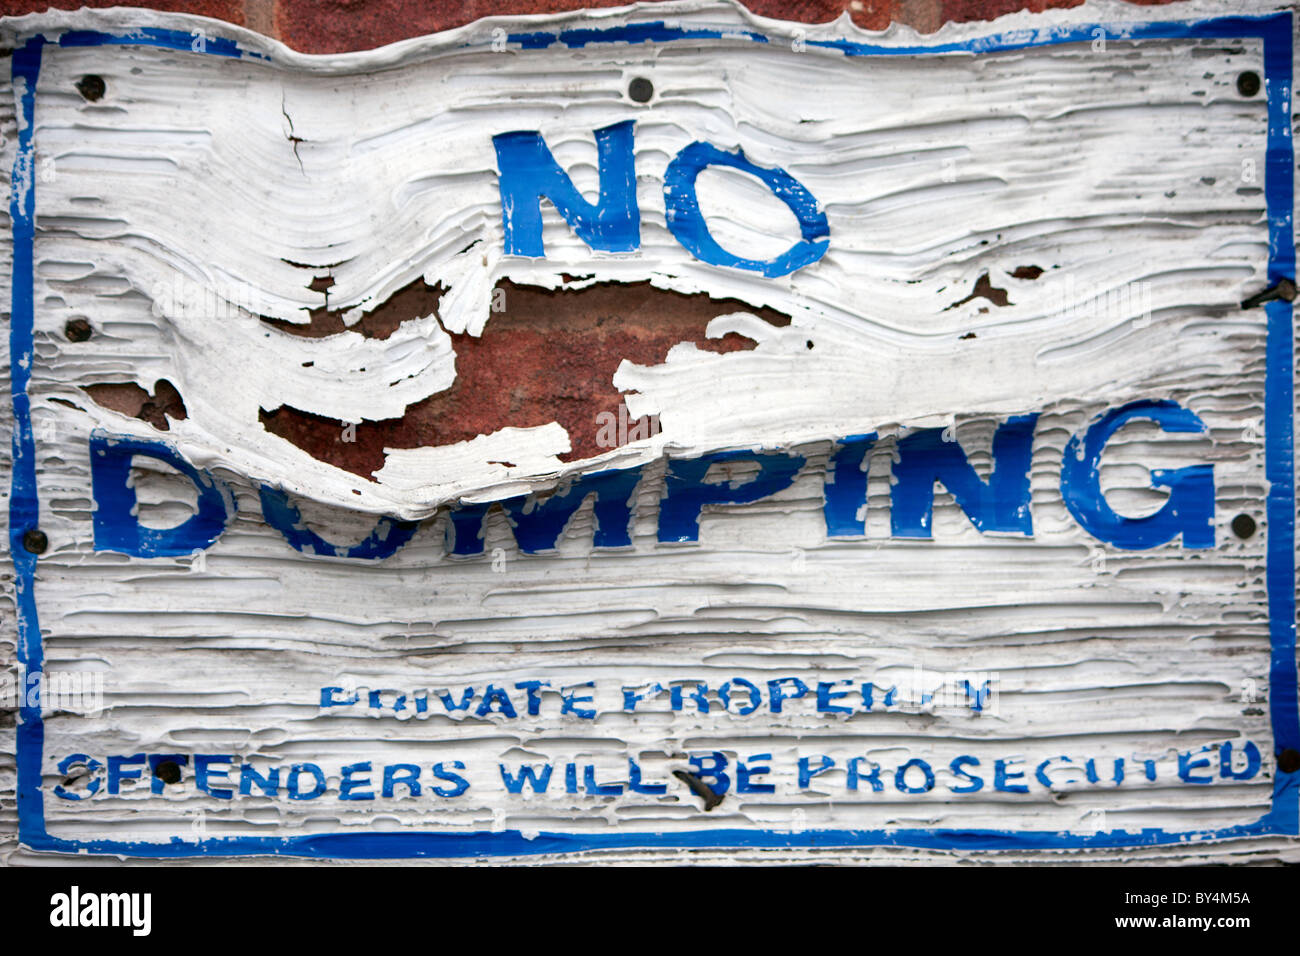 a no dumping sign that has been set on fire and melted during an act of vandalism - Stock Image